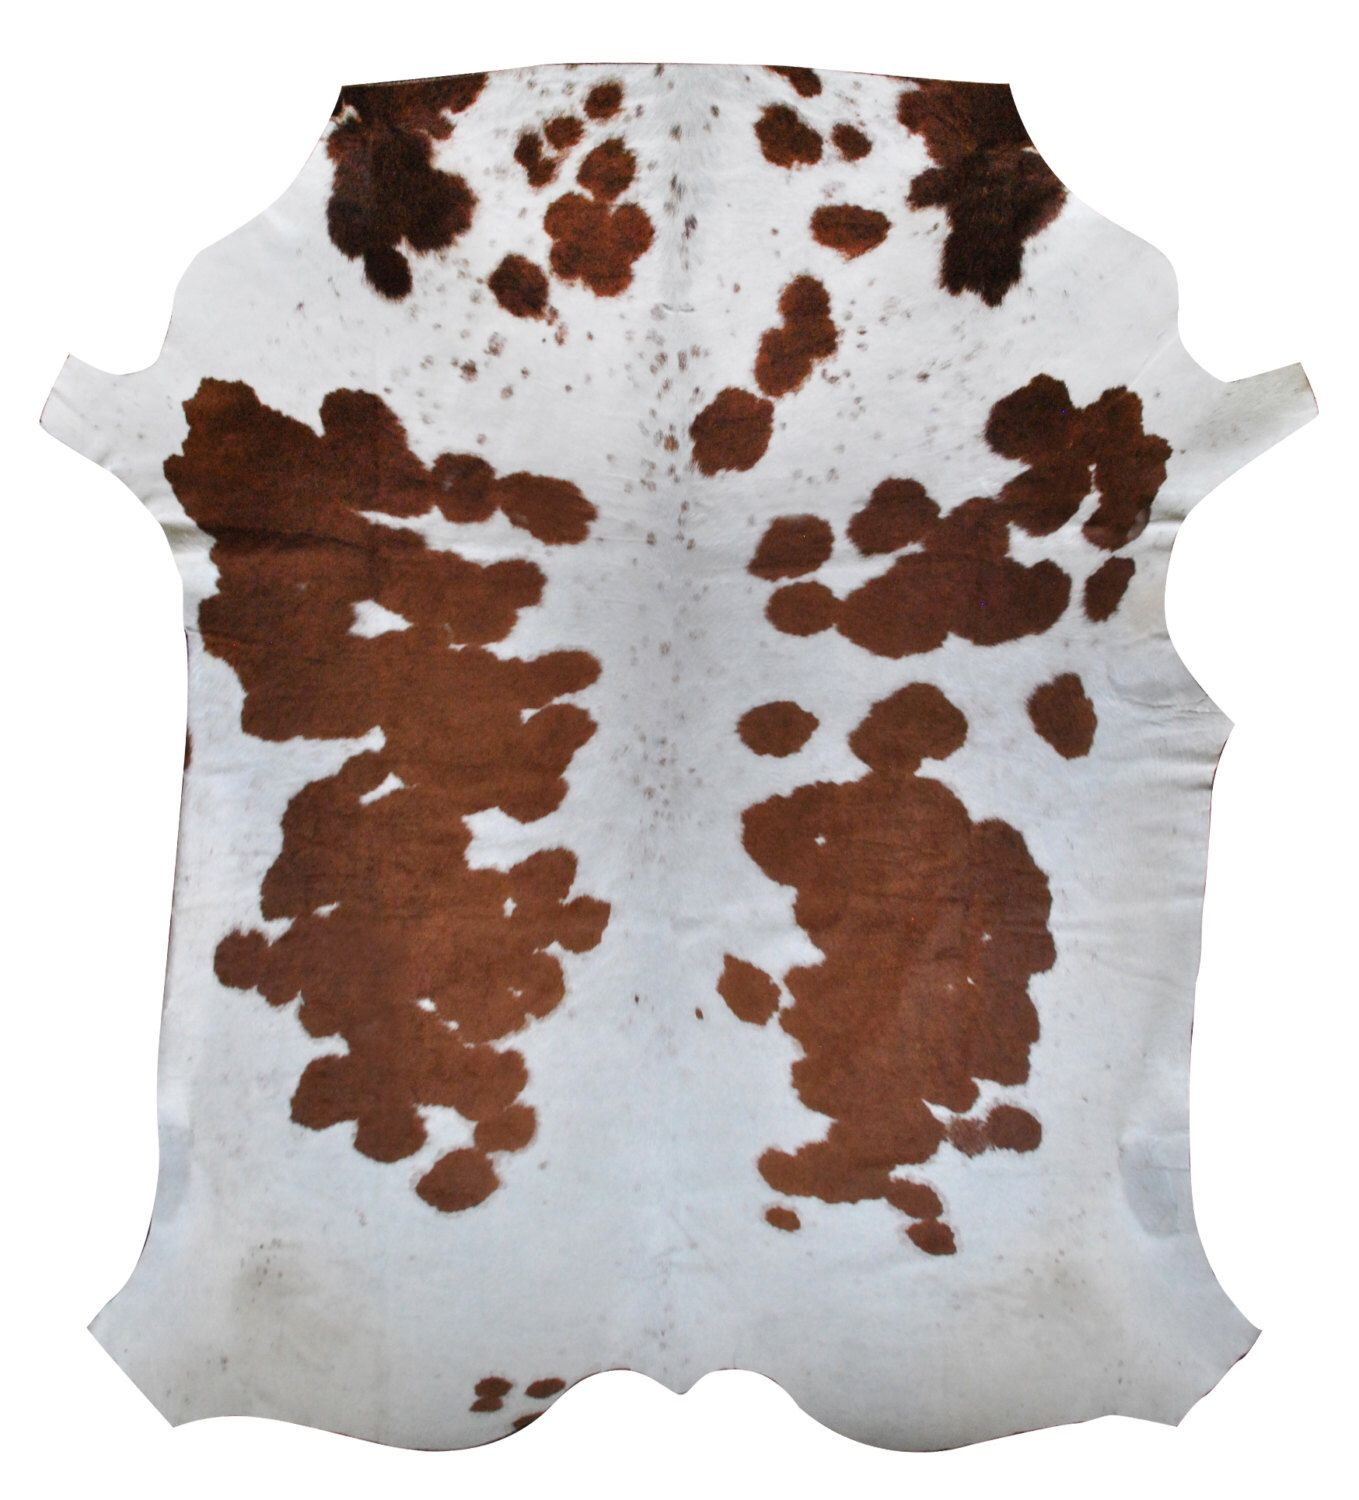 cowhide rug smallmedium brown and white cow hide from africa cow skin animal hide that would make any room more luxurious and stylish